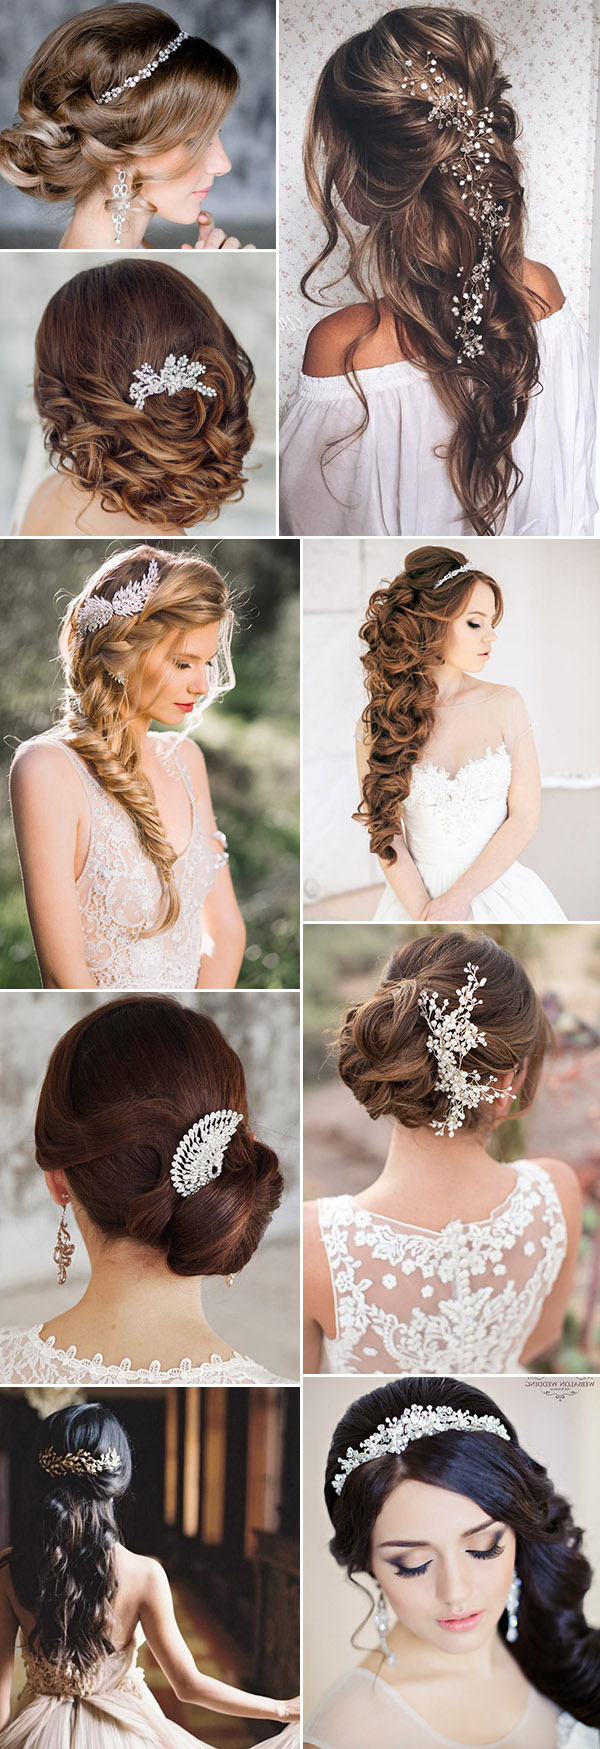 Best And Newest Pearls Bridal Hairstyles Throughout Top 20 Bridal Headpieces For Your Wedding Hairstyles (View 2 of 20)